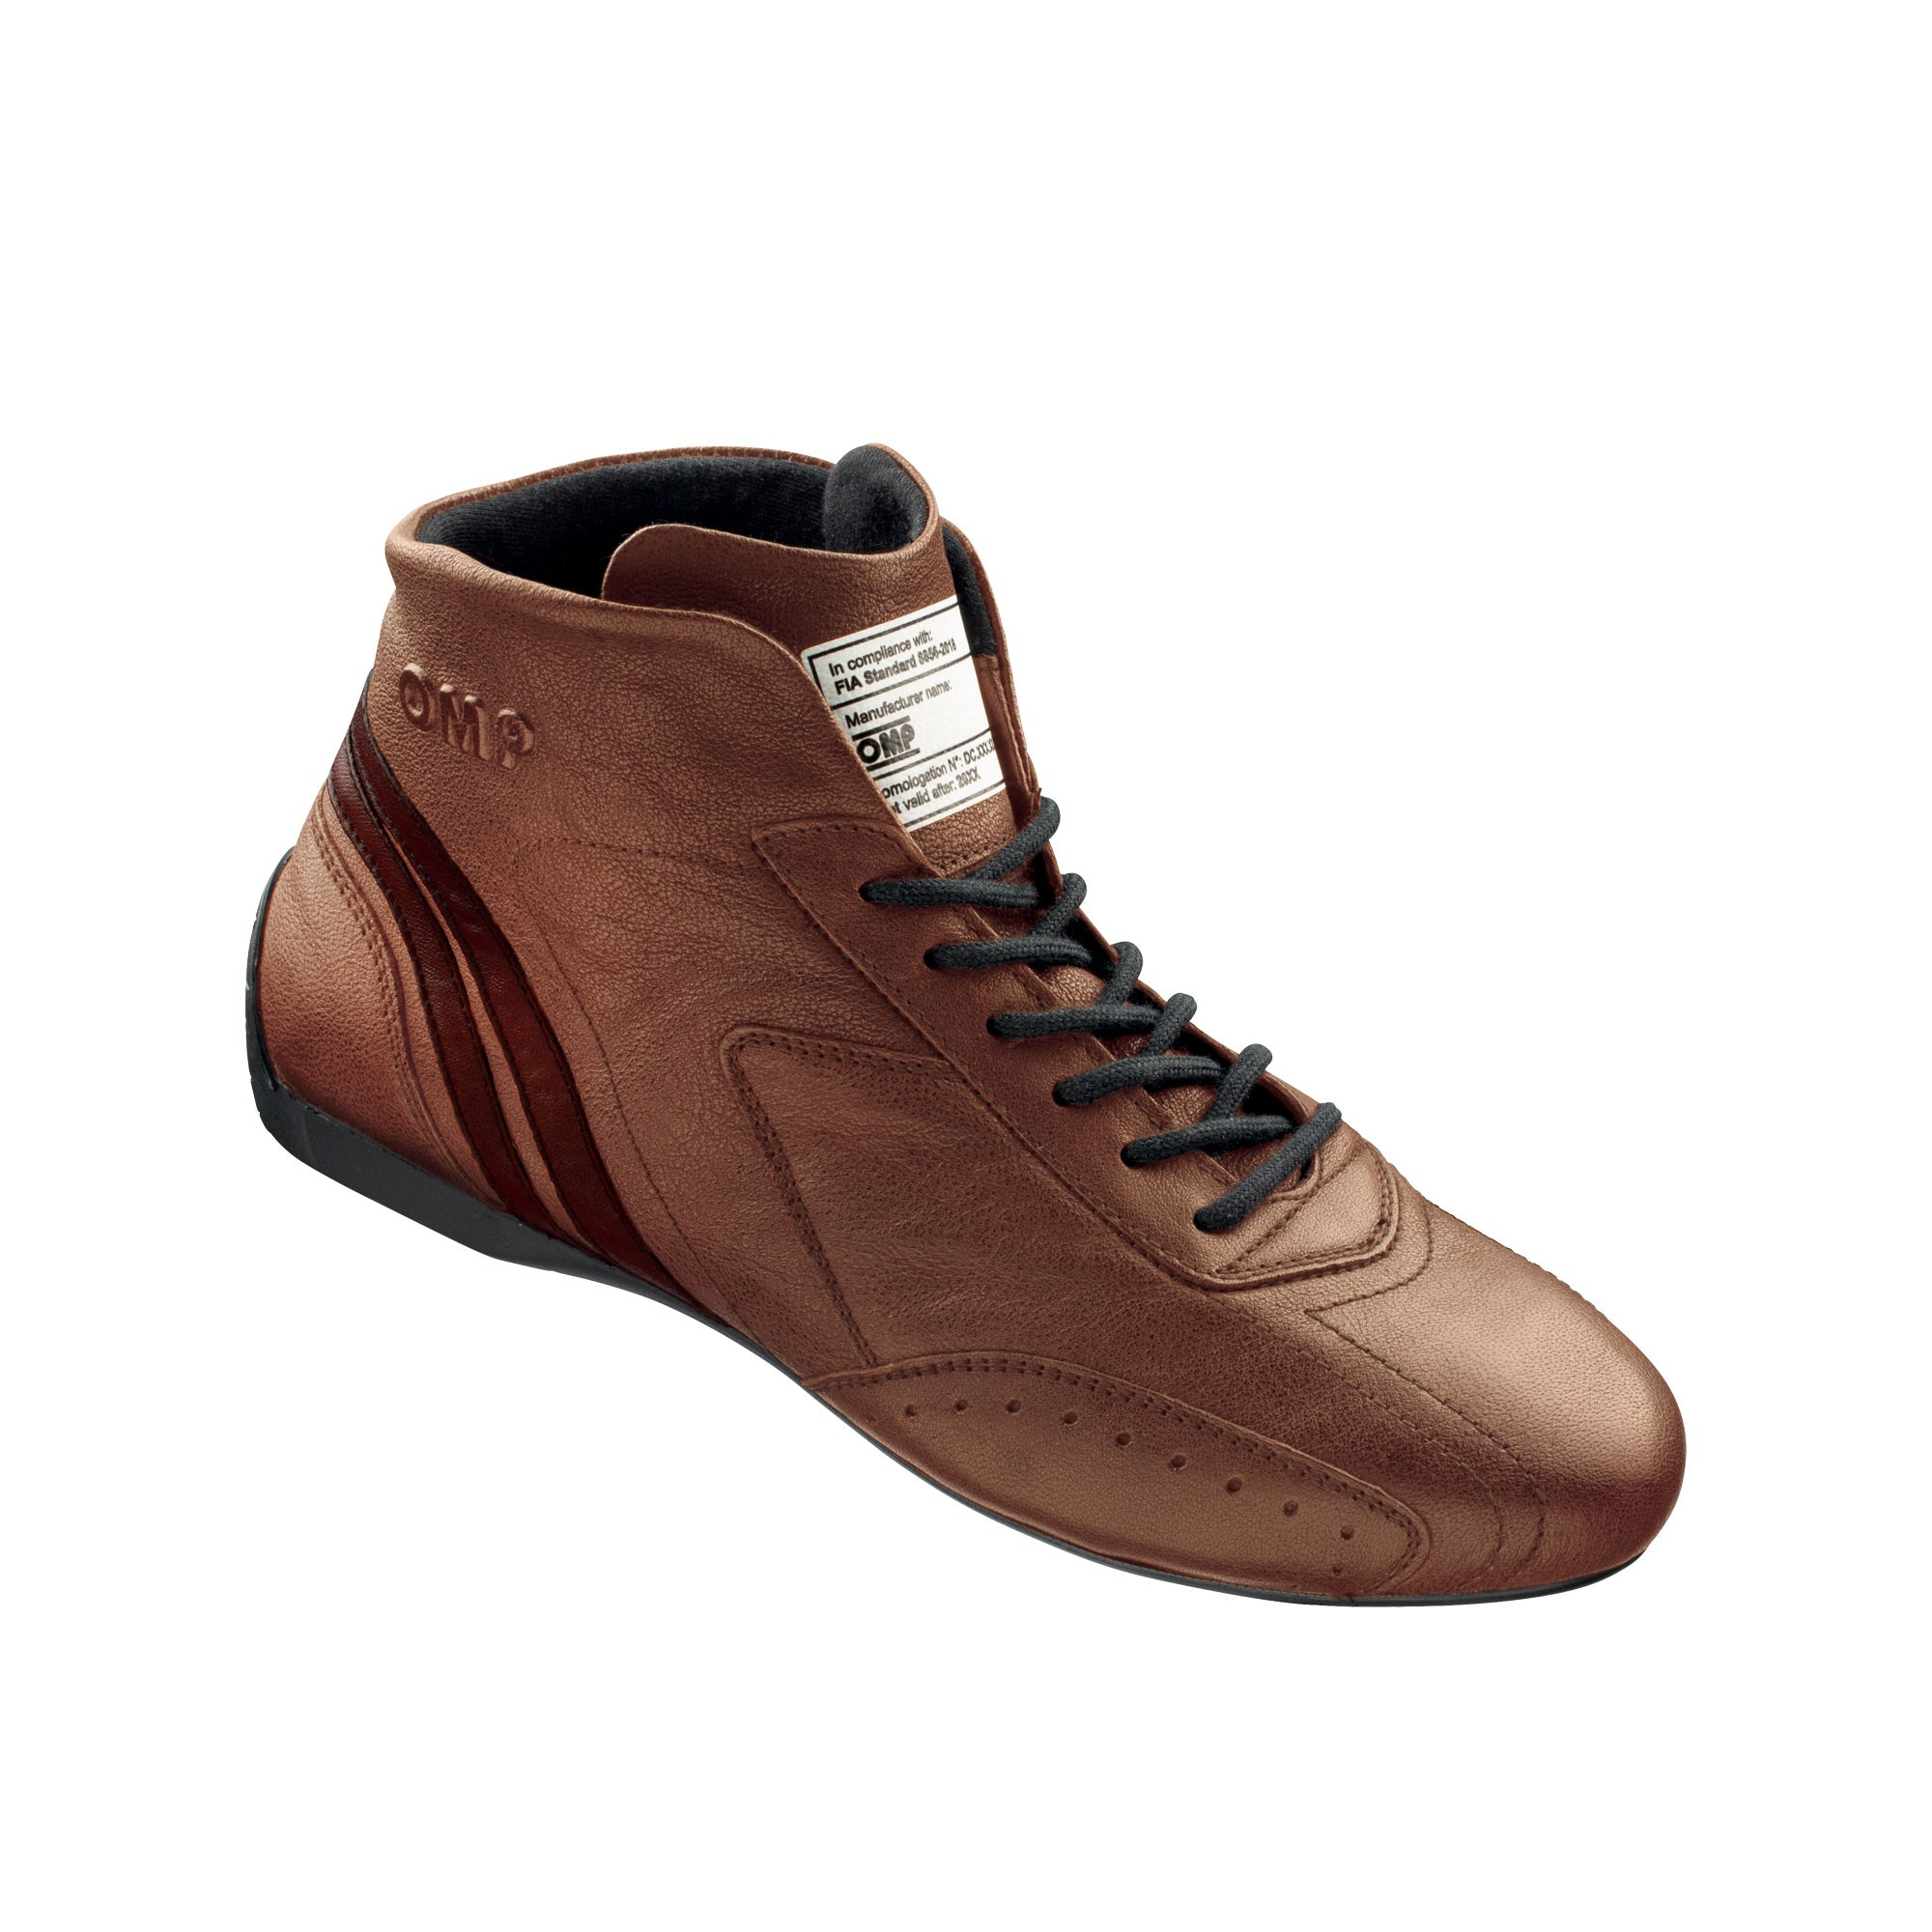 CARRERA LOW BOOTS my2021 BROWN SIZE 37 FIA 8856-2018